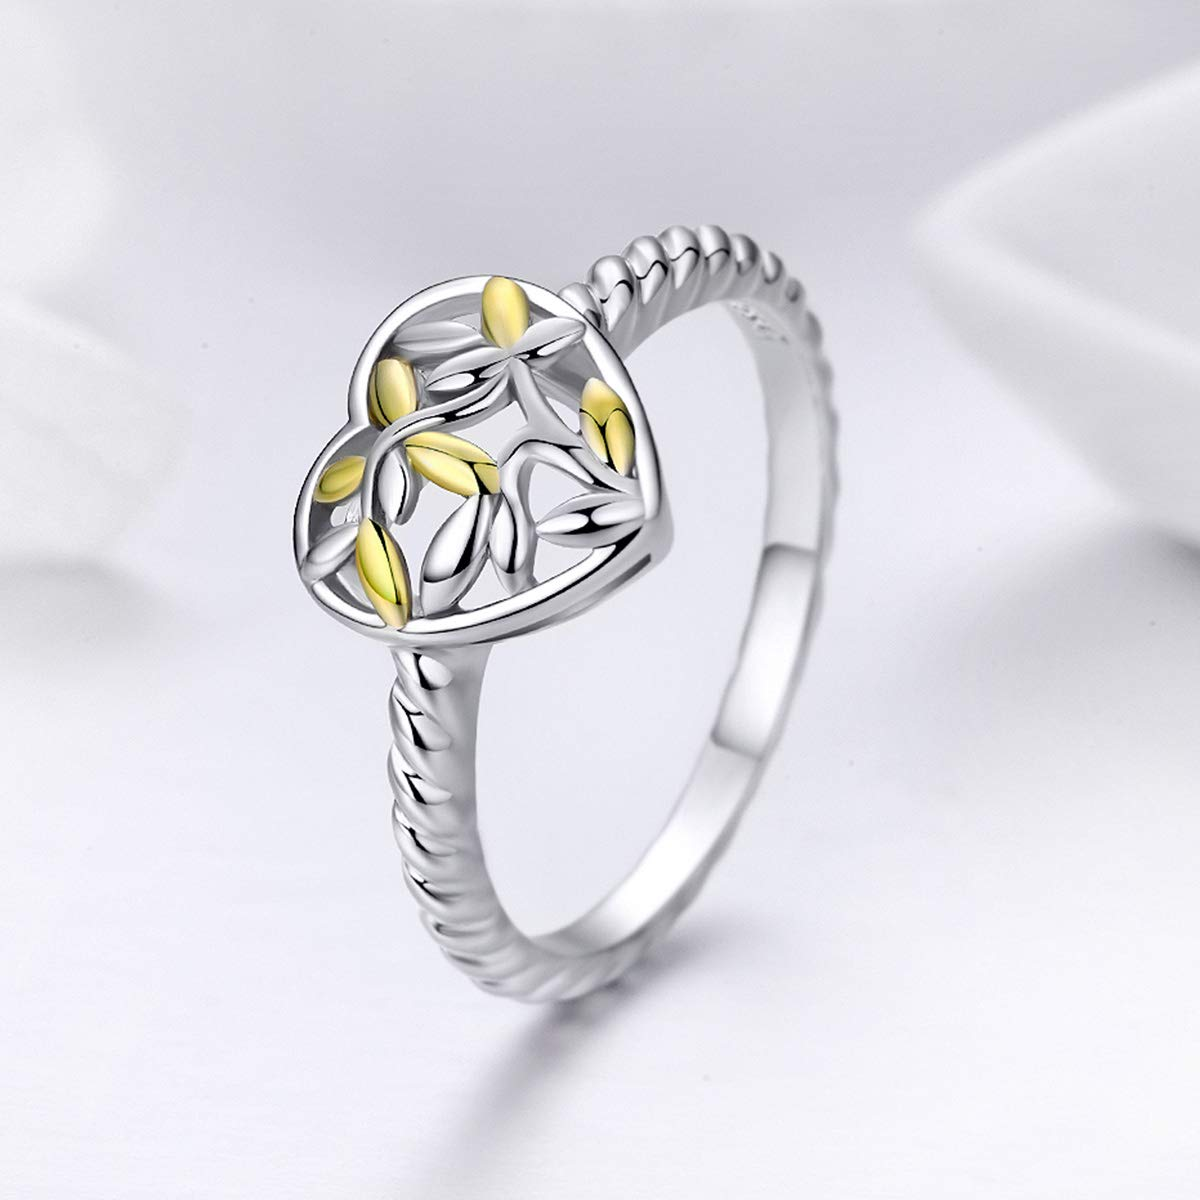 Everbling Heart Engrave Tree Leaves 925 Sterling Silver Ring